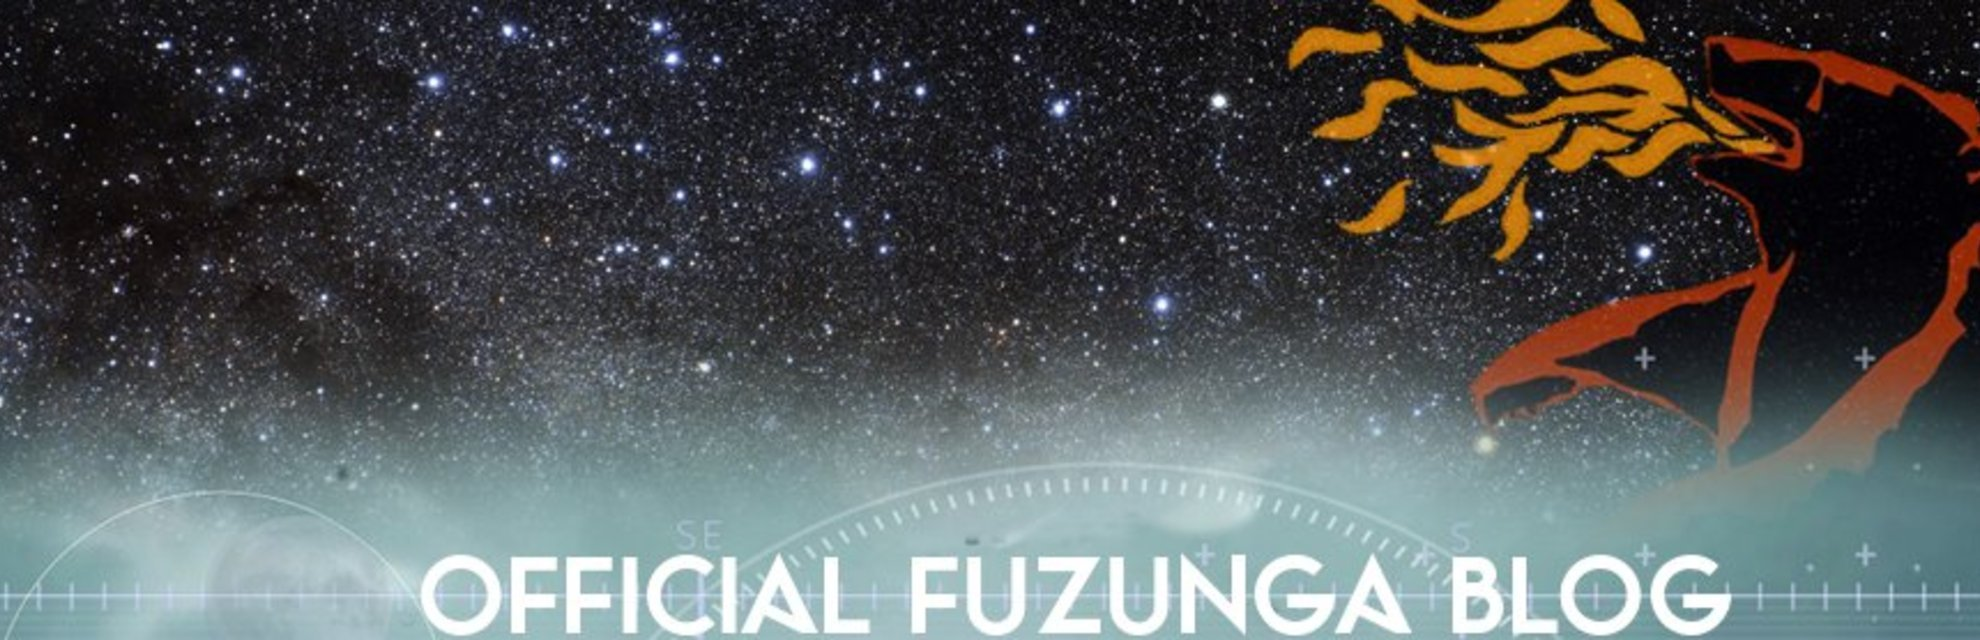 Fuzunga blog header photo